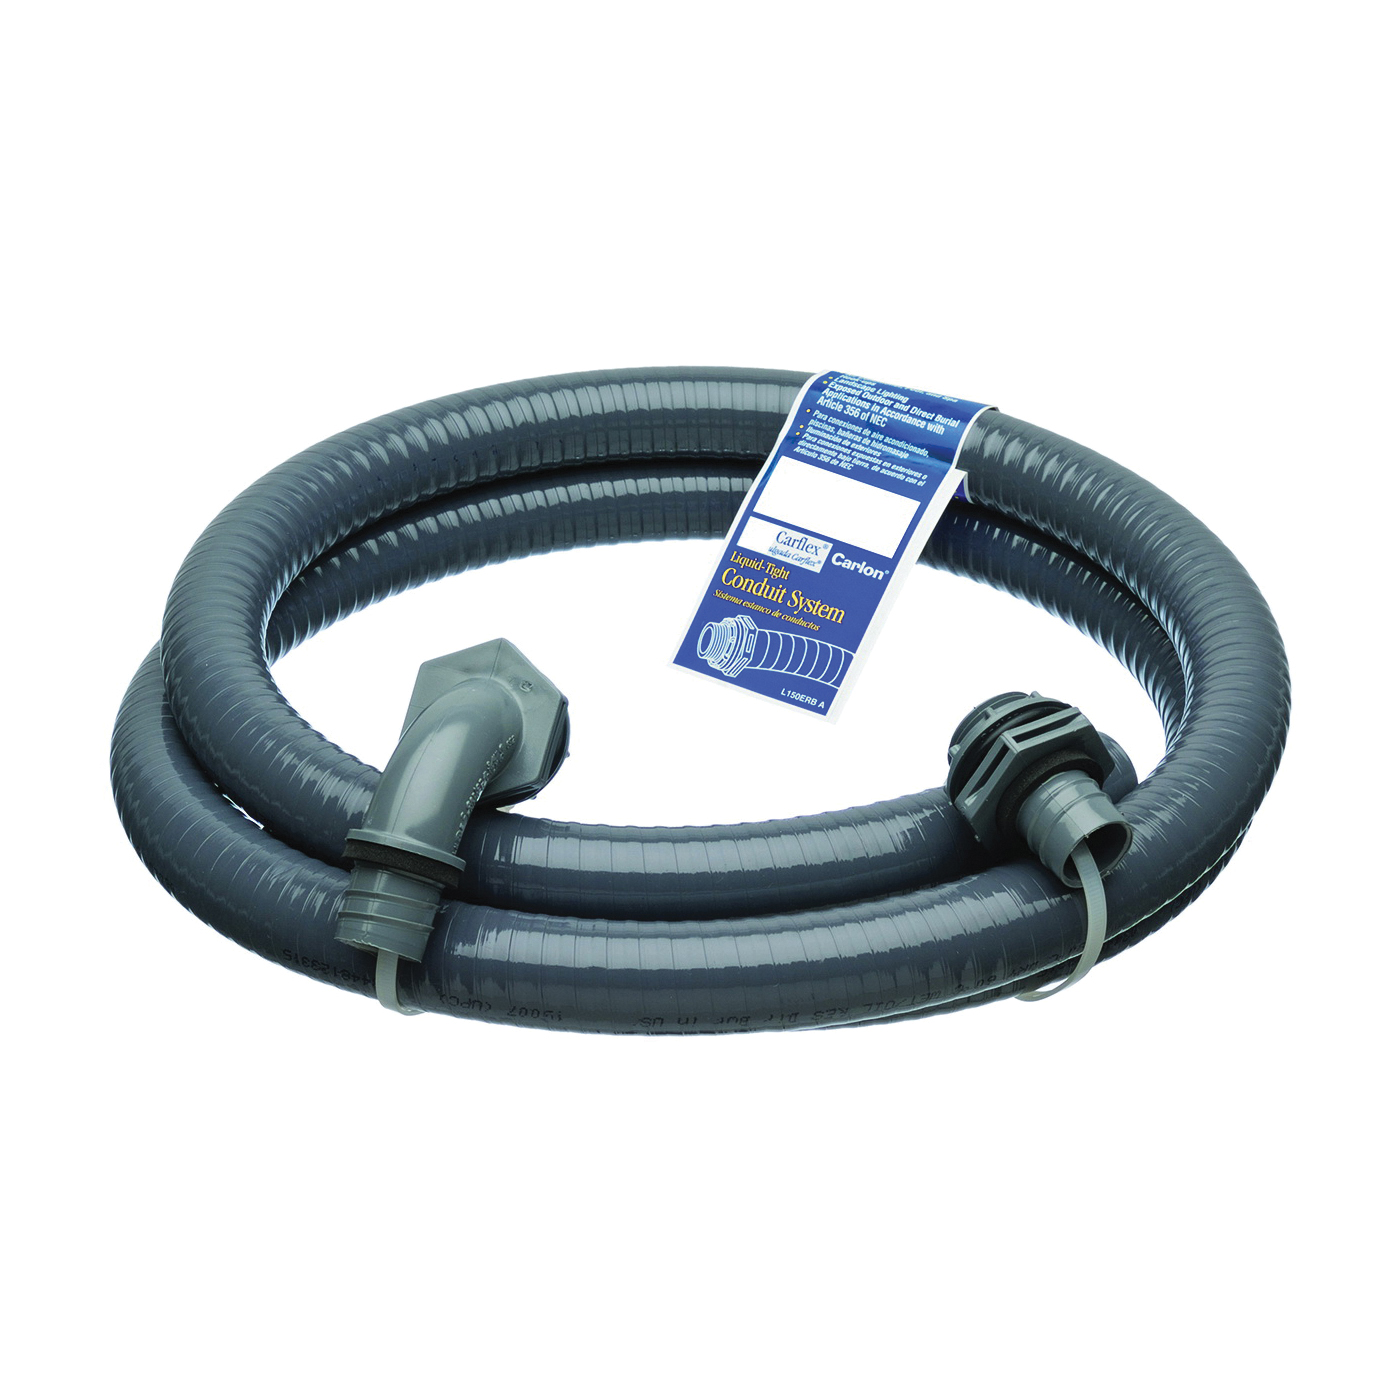 Picture of Carlon 150DRB Electrical Conduit, 6 ft L, 1/2 in Trade, PVC